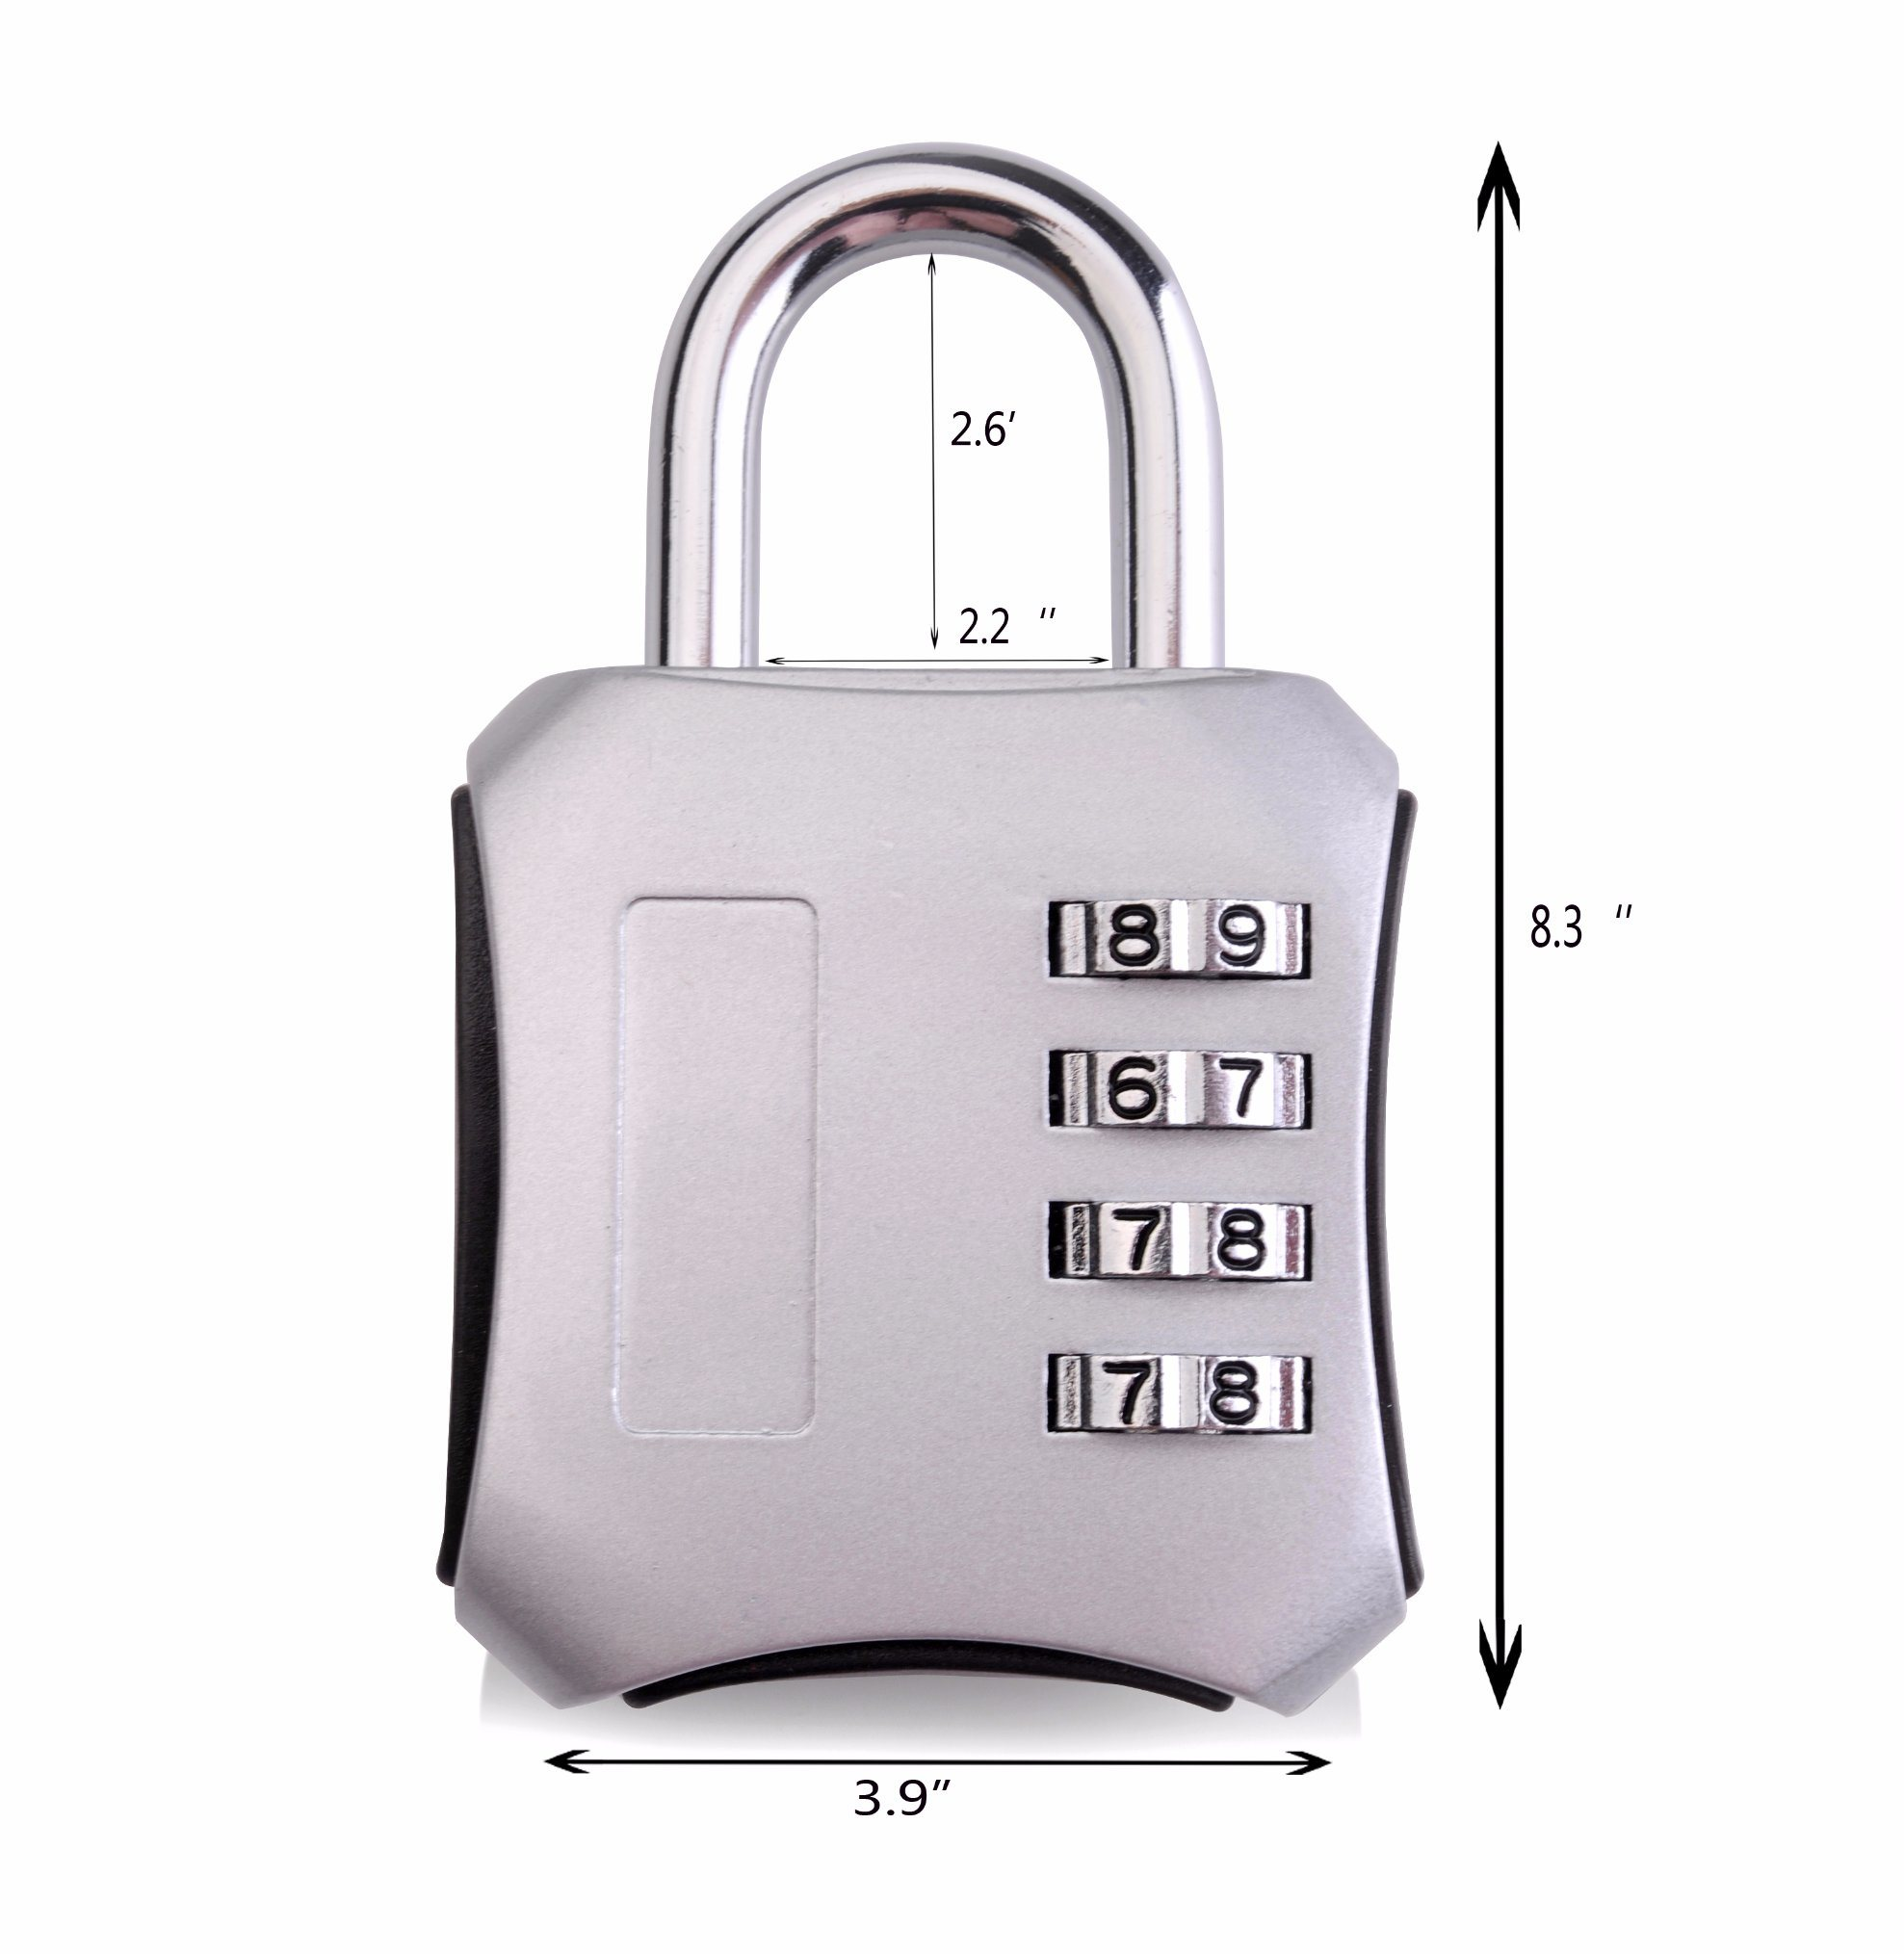 Sepox Resettable Combination Travel Lock, 4 Digit Combination Lock for Suitcase